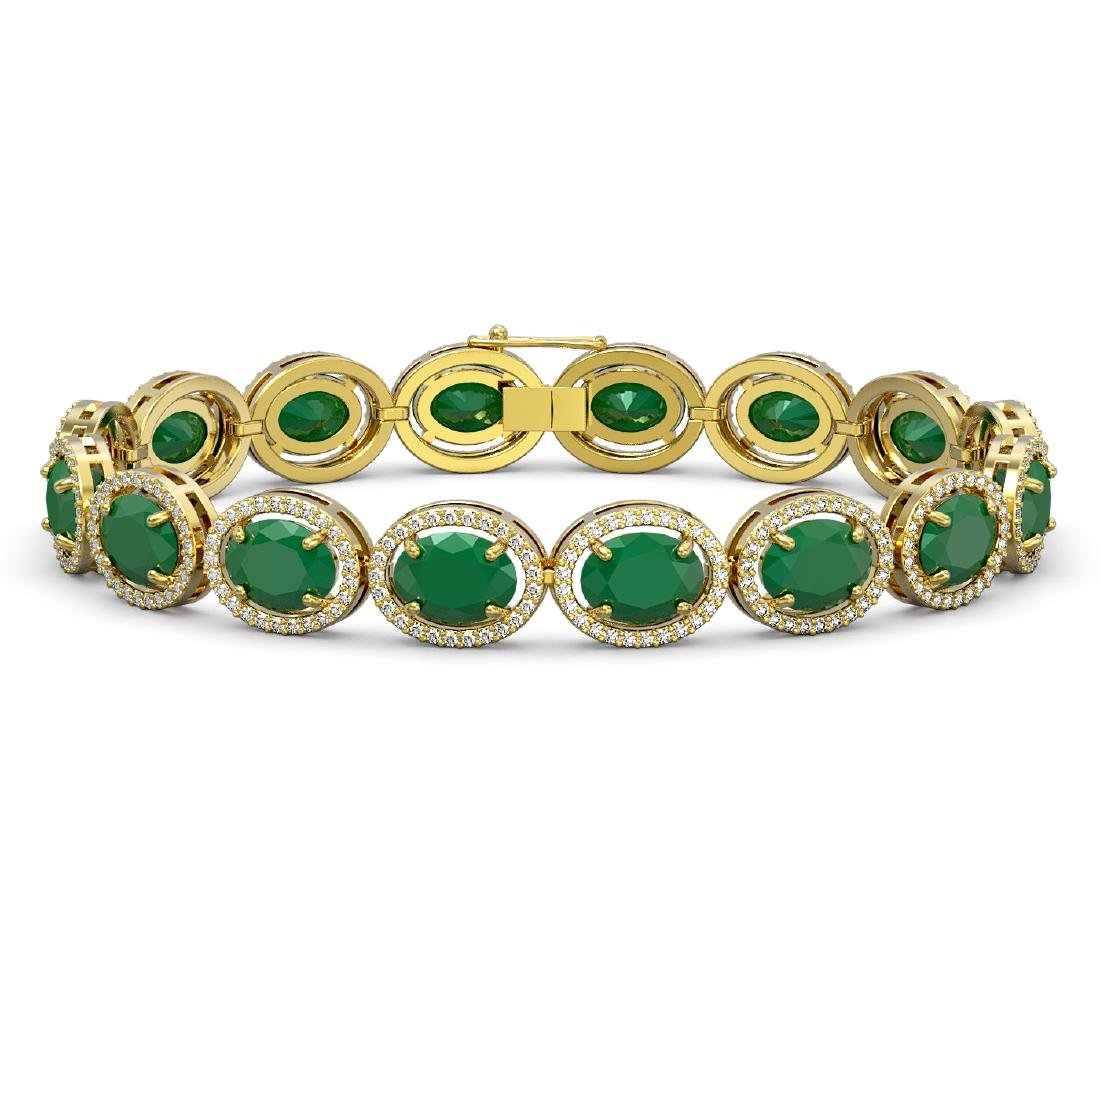 31.79 CTW Emerald & Diamond Halo Bracelet 10K Yellow